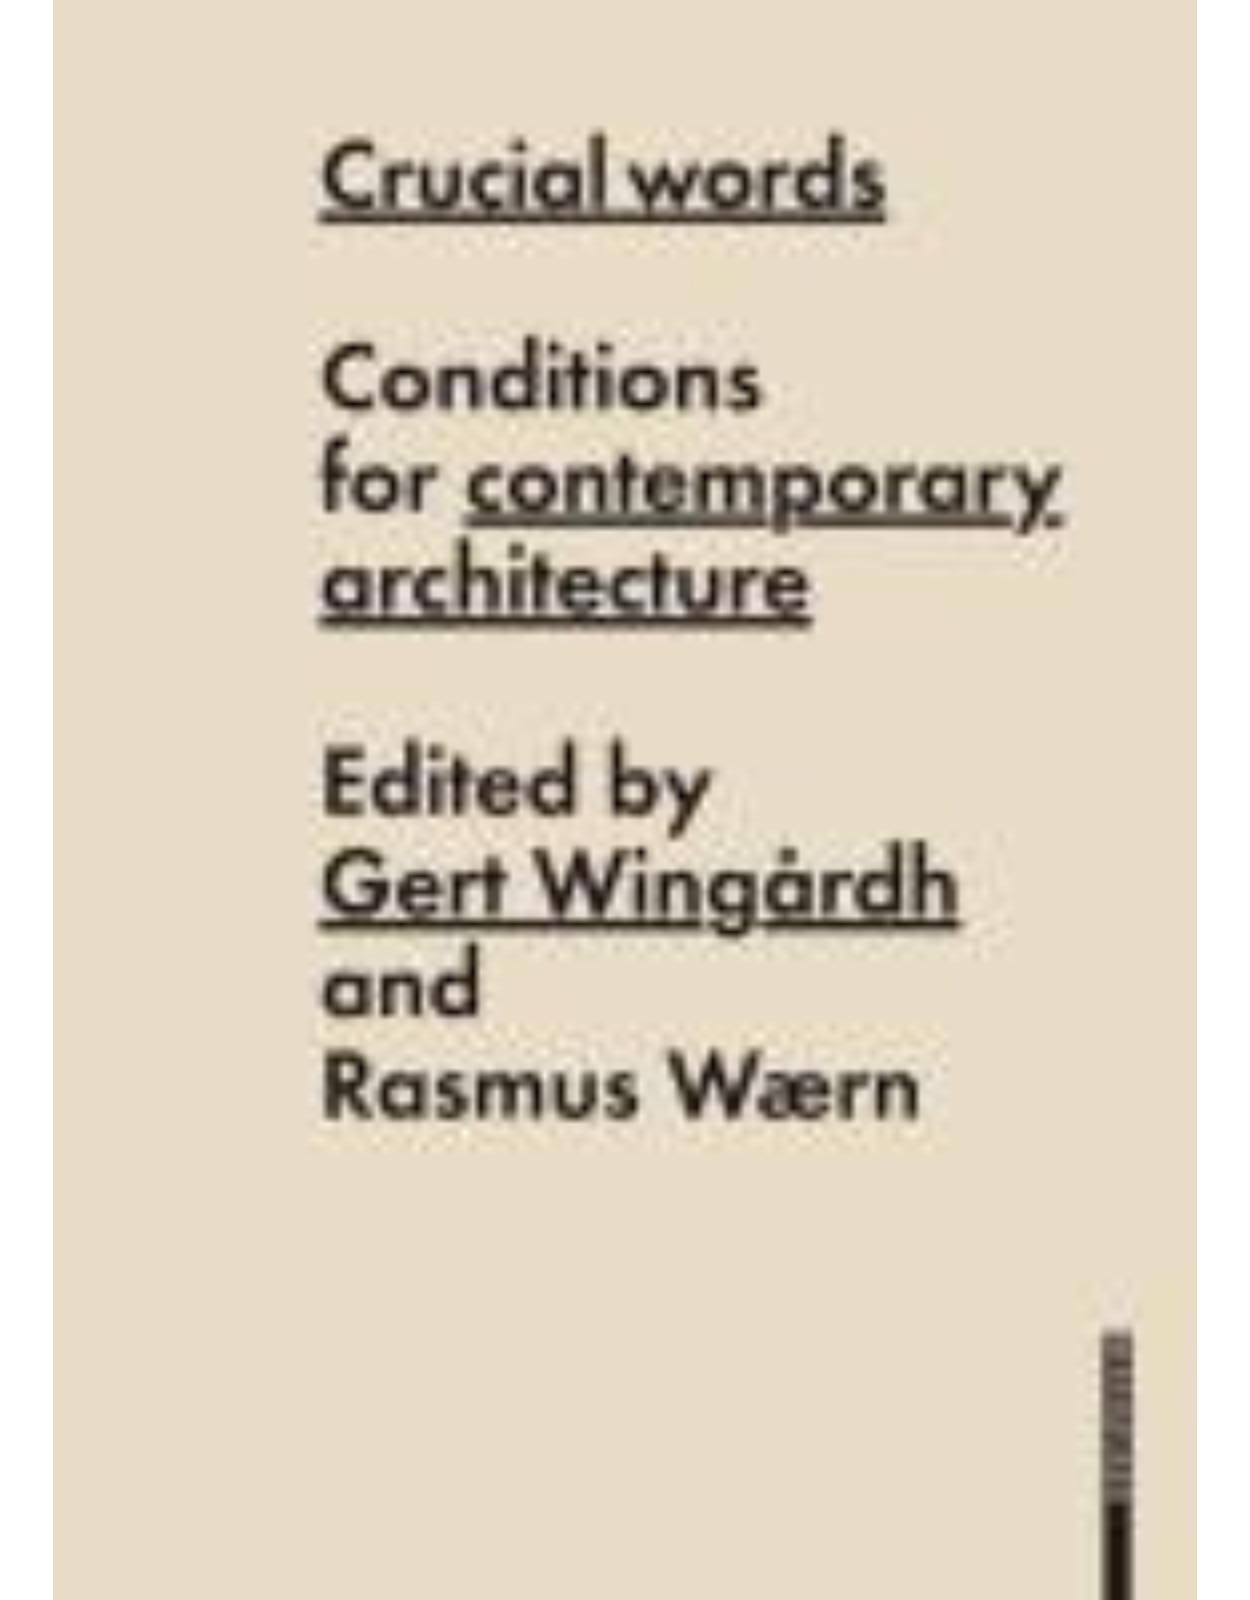 Crucial Words: Conditions for Contemporary Architecture